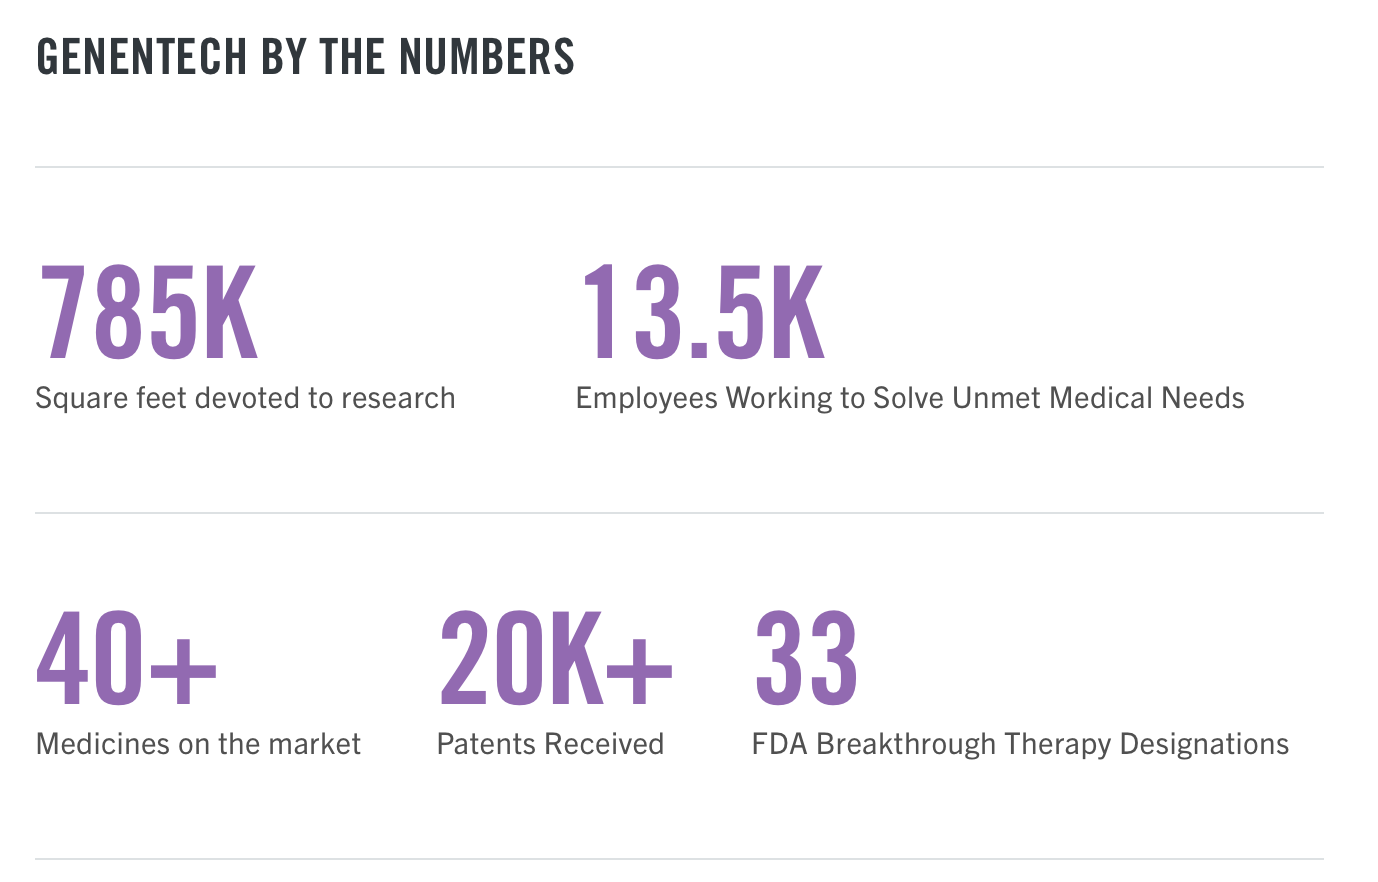 Genentech by numbers